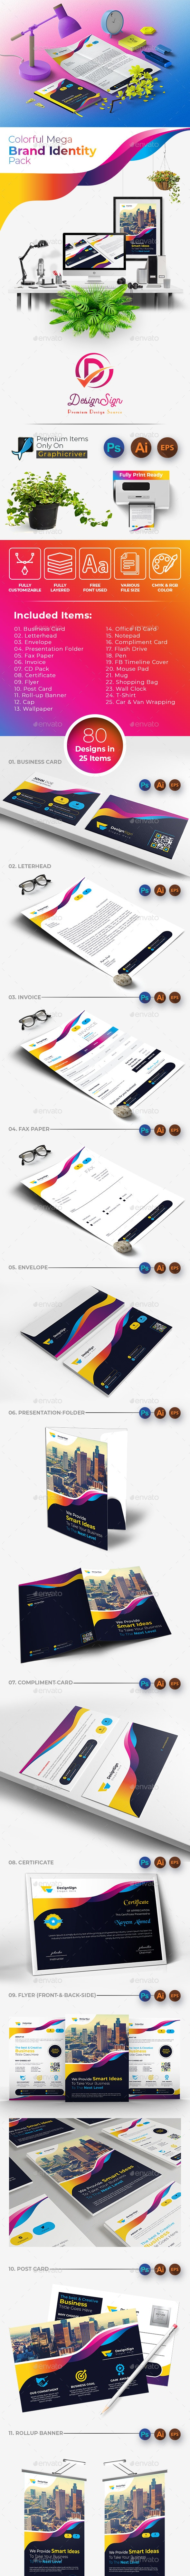 Colorful Mega Branding Identity - Stationery Print Templates